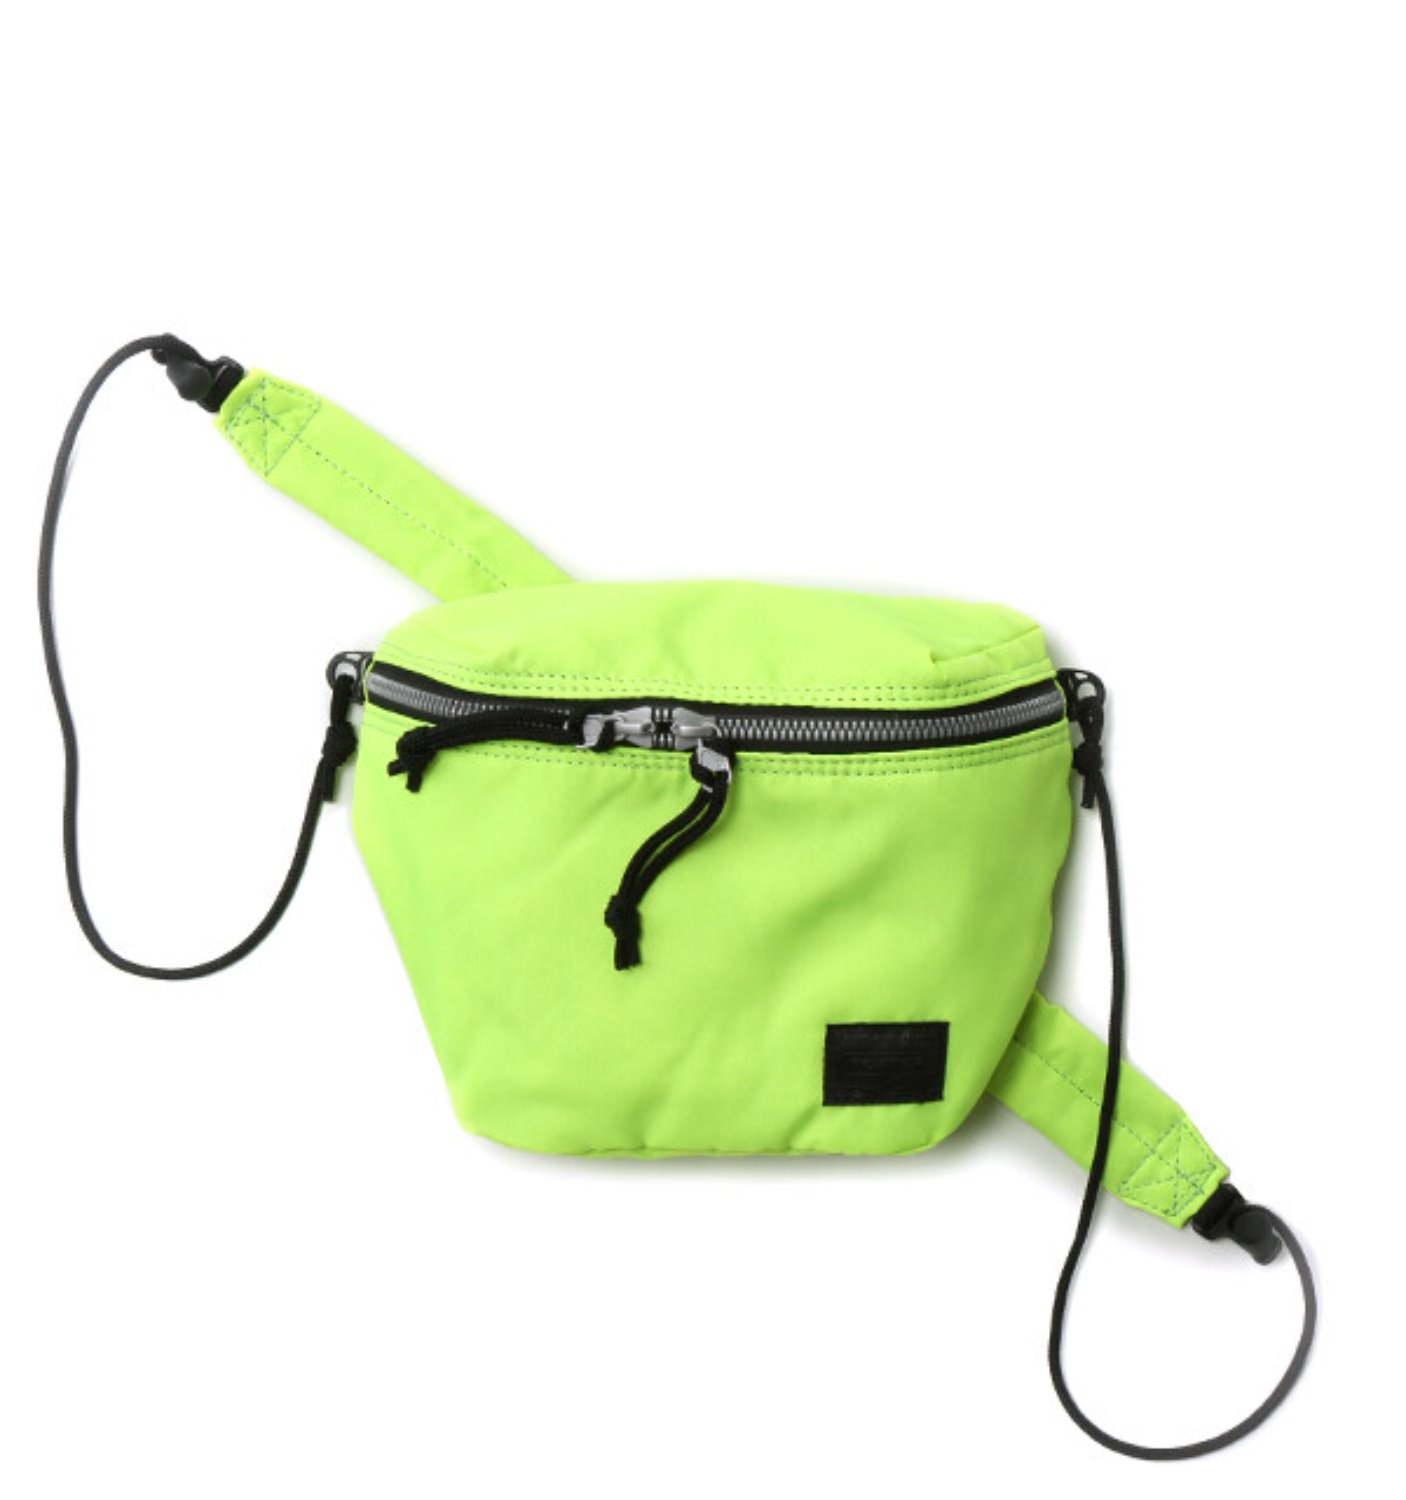 BAL/PORTER® FLGHT NYLON SACOCH NEON YELLOW